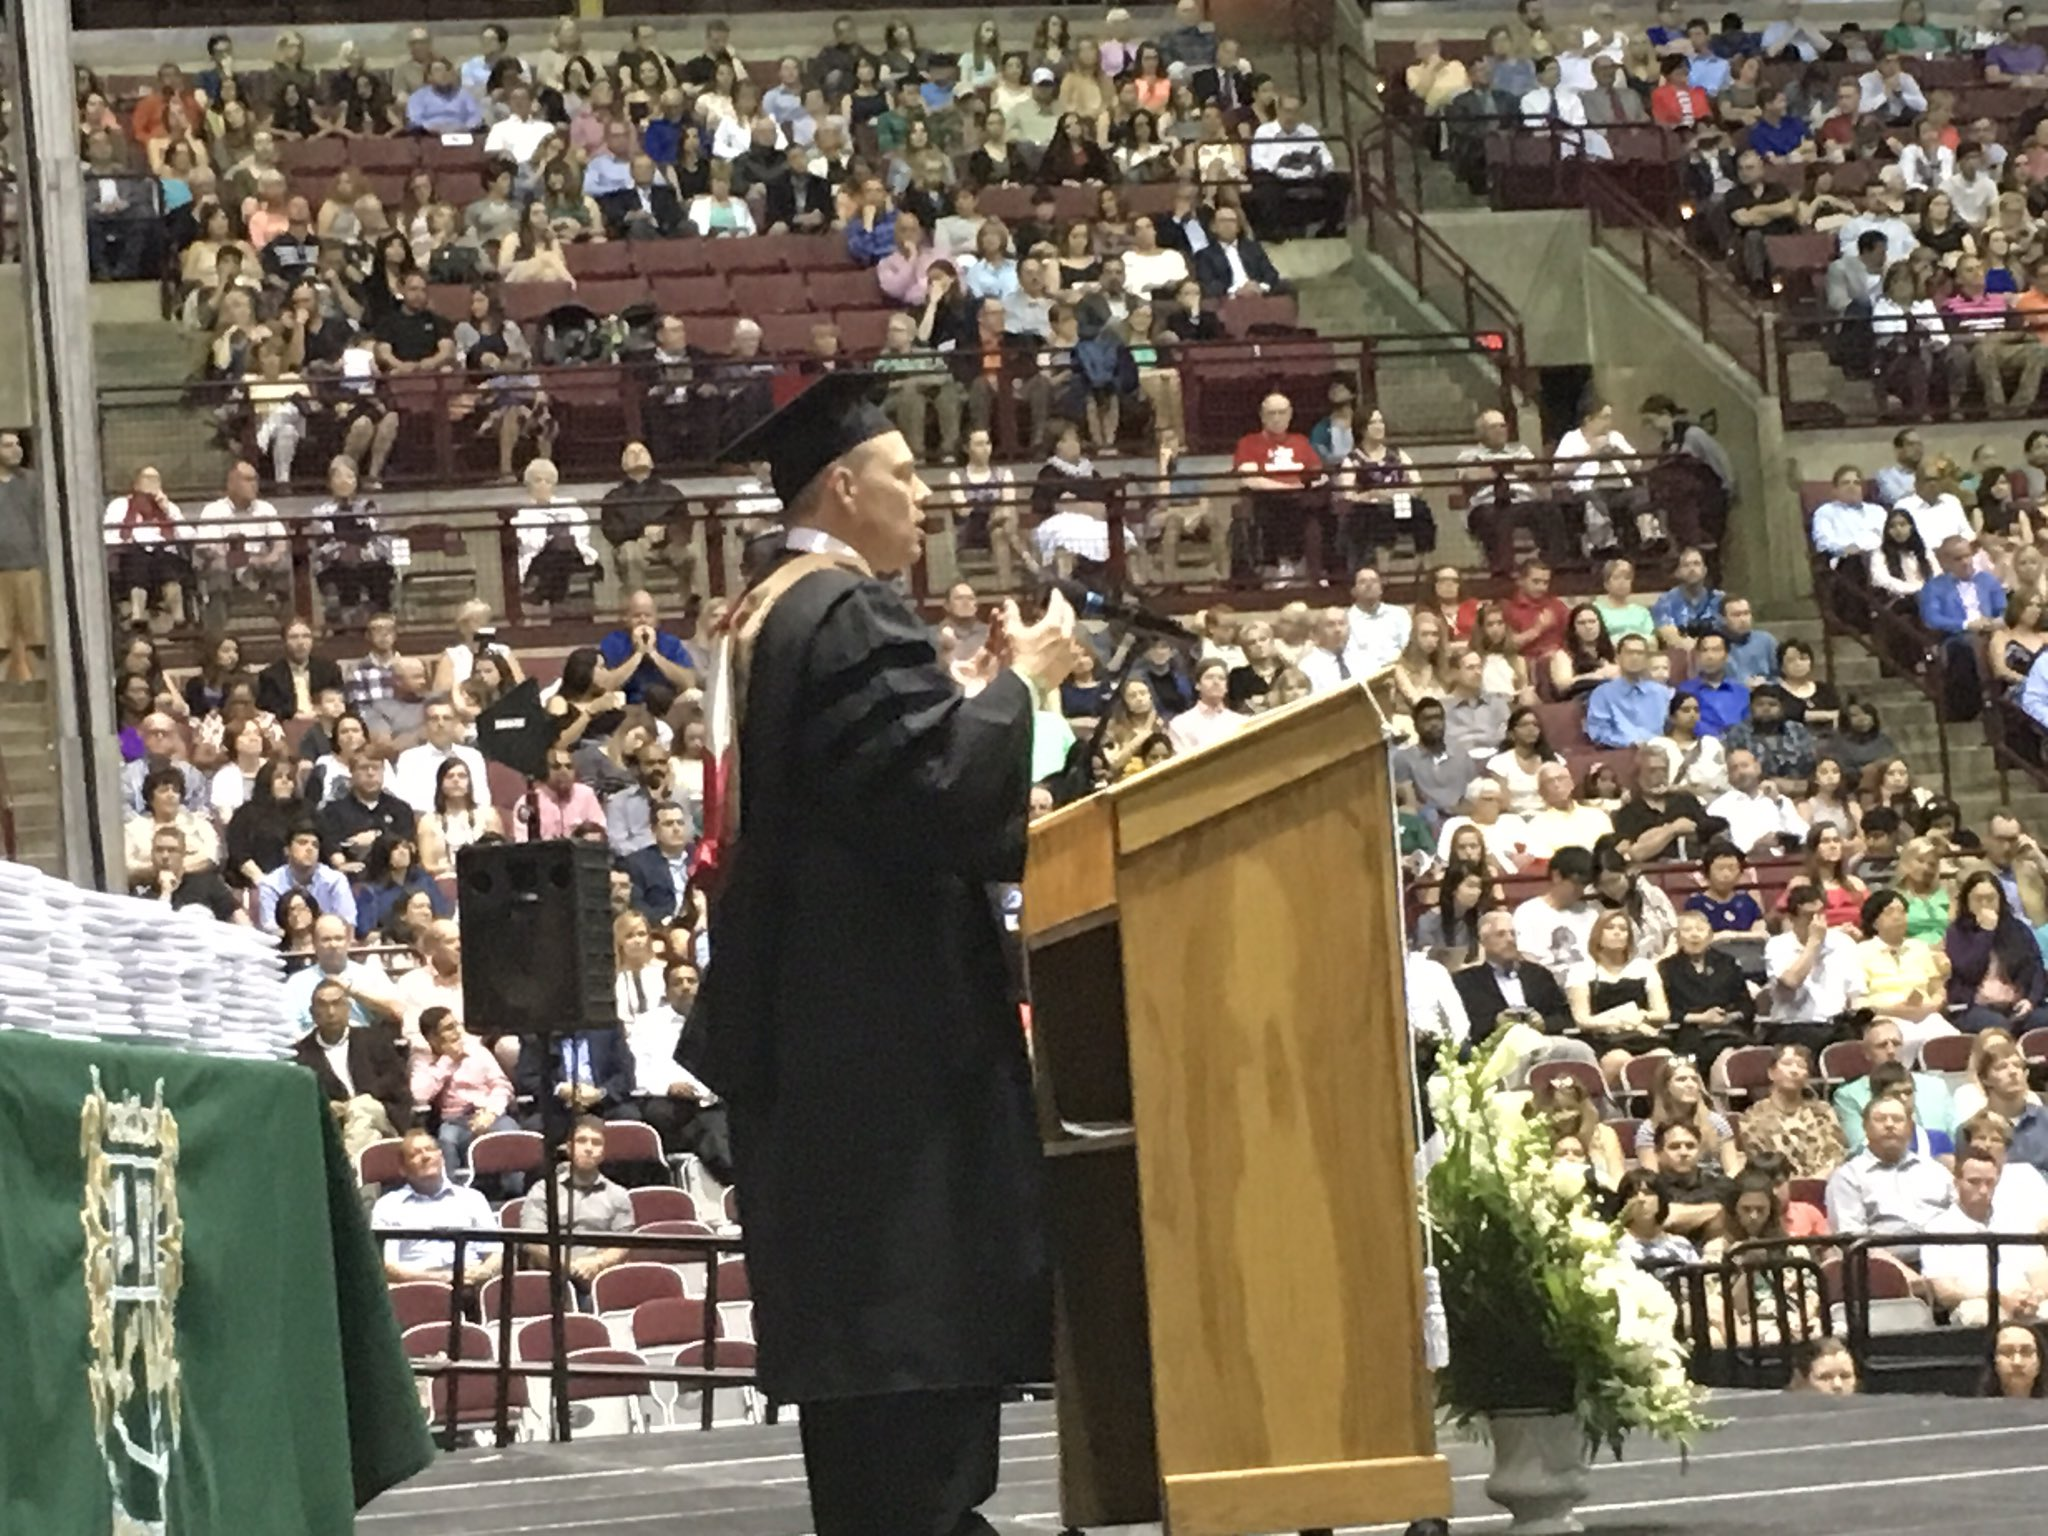 Supt. @toddhoadley thanking the @dublinjeromehs students who will be enlisting in the military after graduation. #DCSgrads17 https://t.co/hepXAWTj76